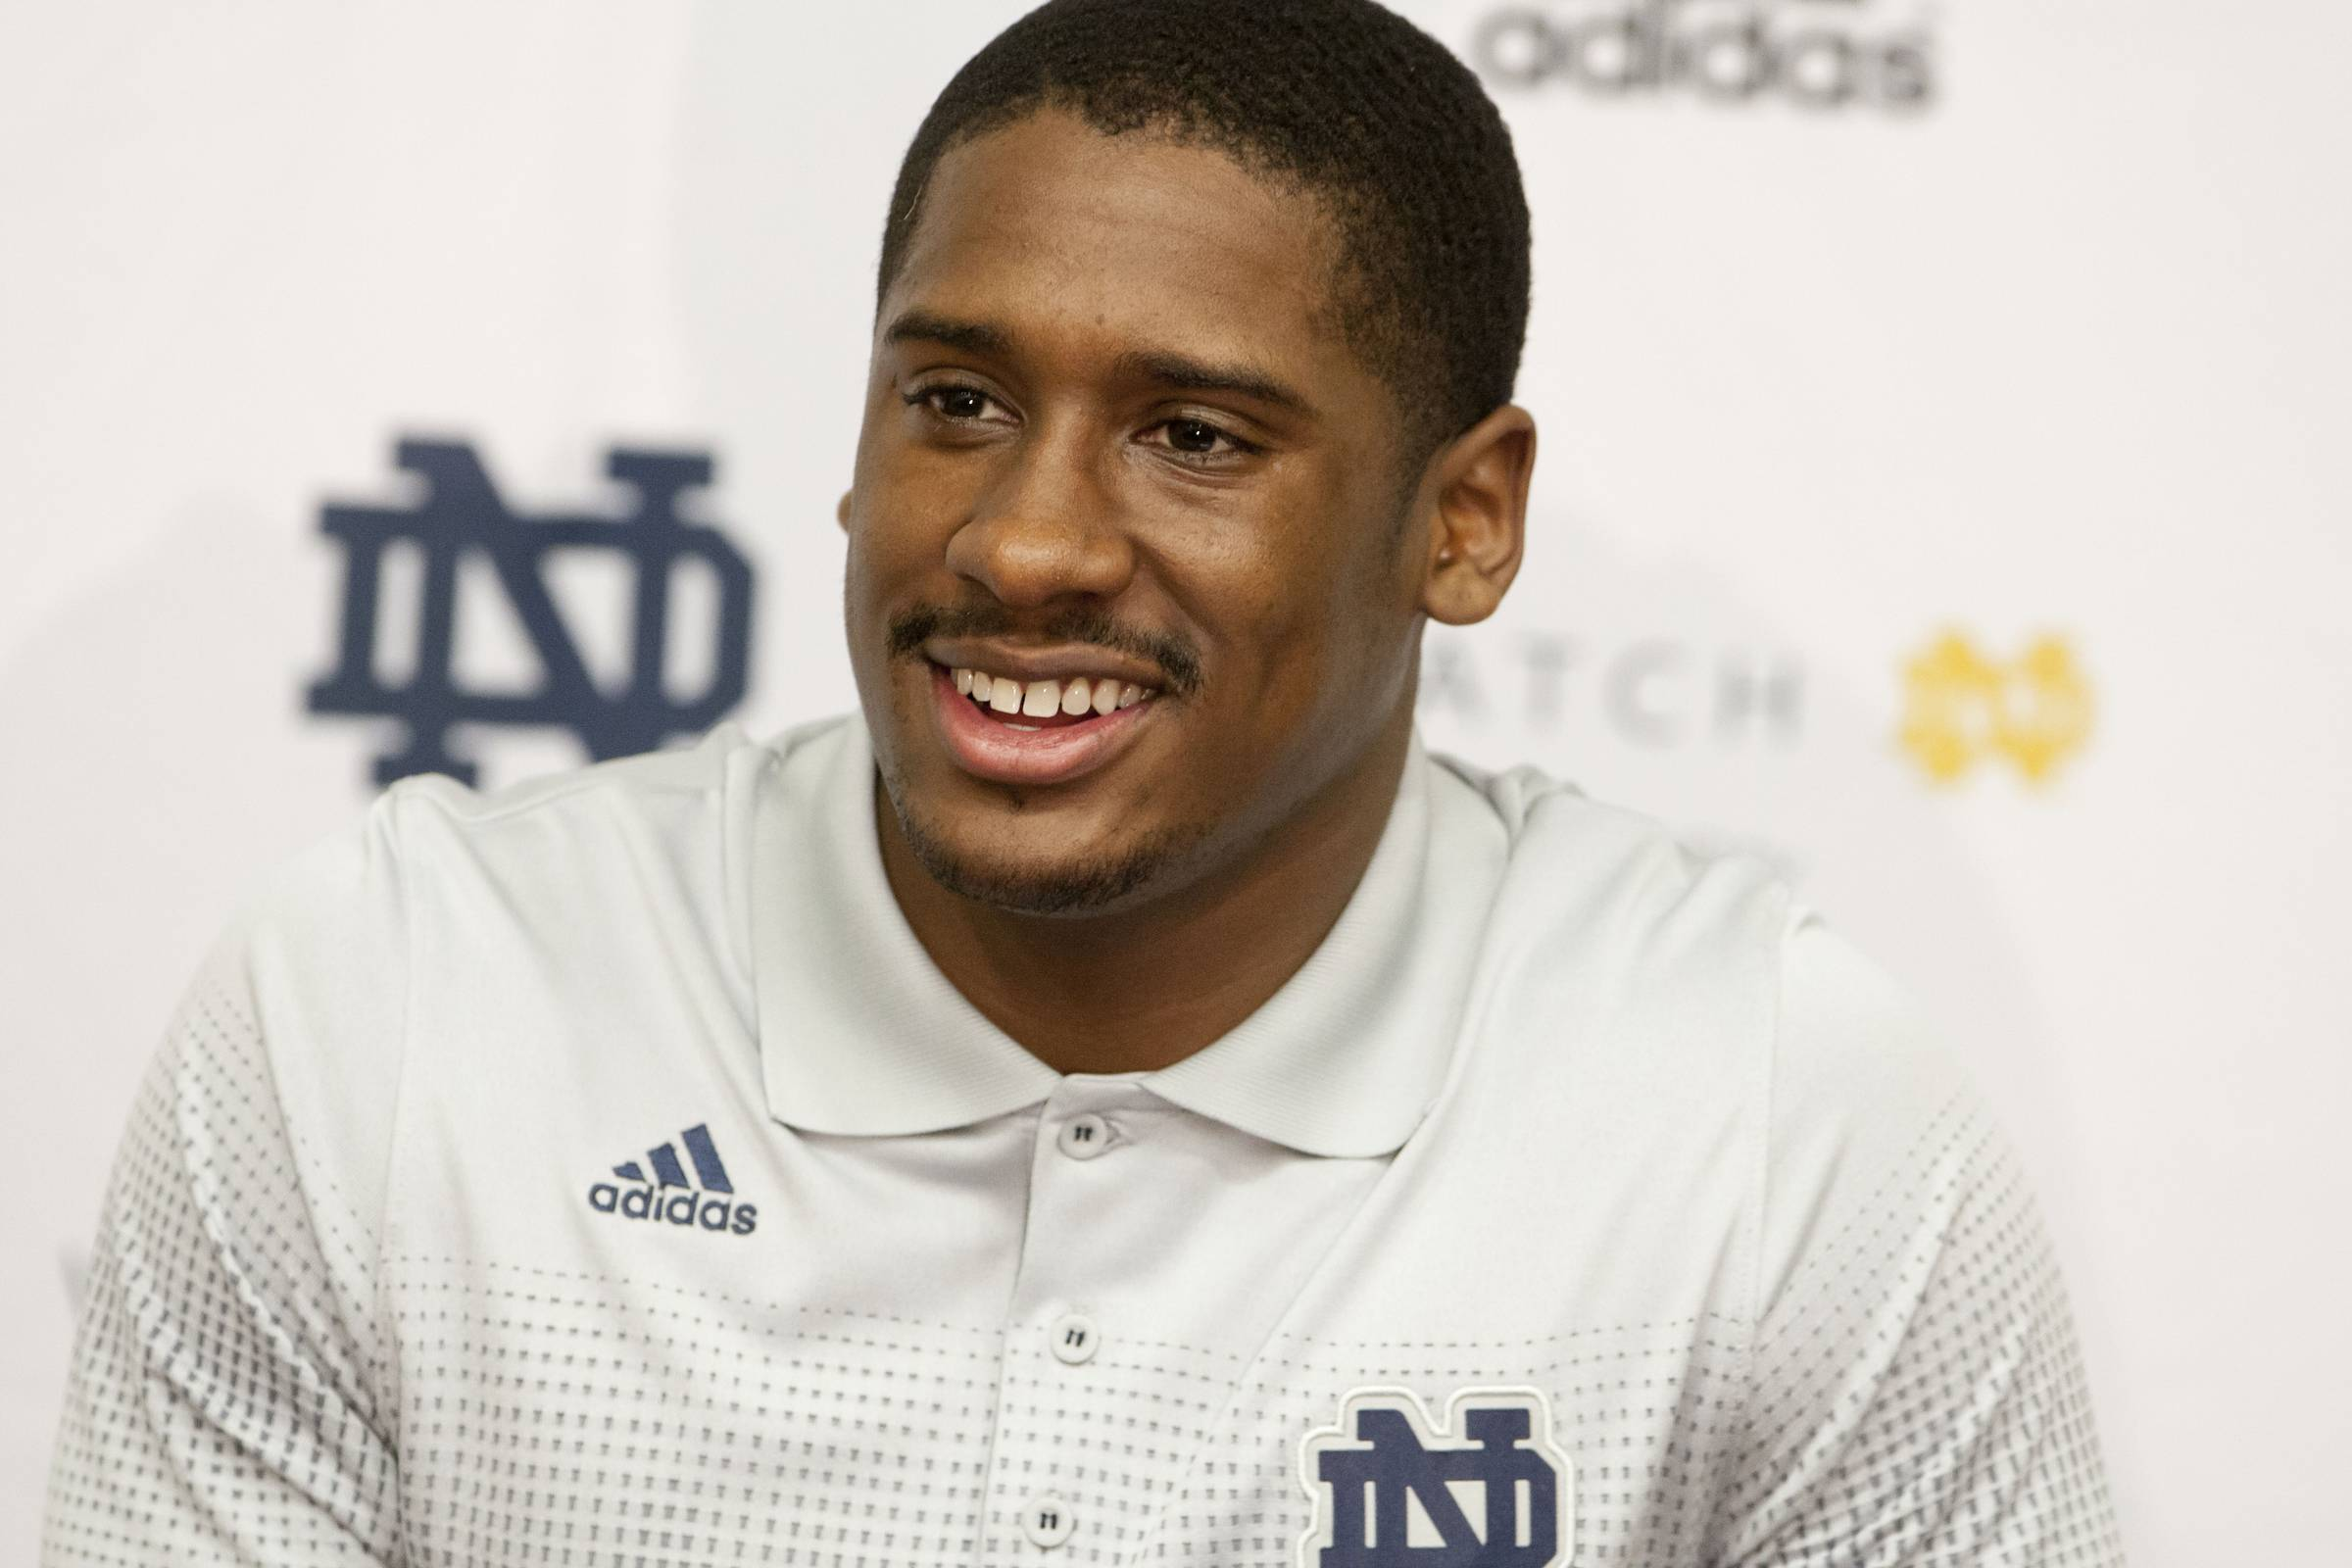 FILe - In this March 3, 2014 file photo, Notre Dame quarterback Everett Golson speaks to the media after the opening day of spring football practice in South Bend, Ind. Golson admits to being a bit jittery at the first day of spring practice last month after being suspended from school last fall for academic impropriety.